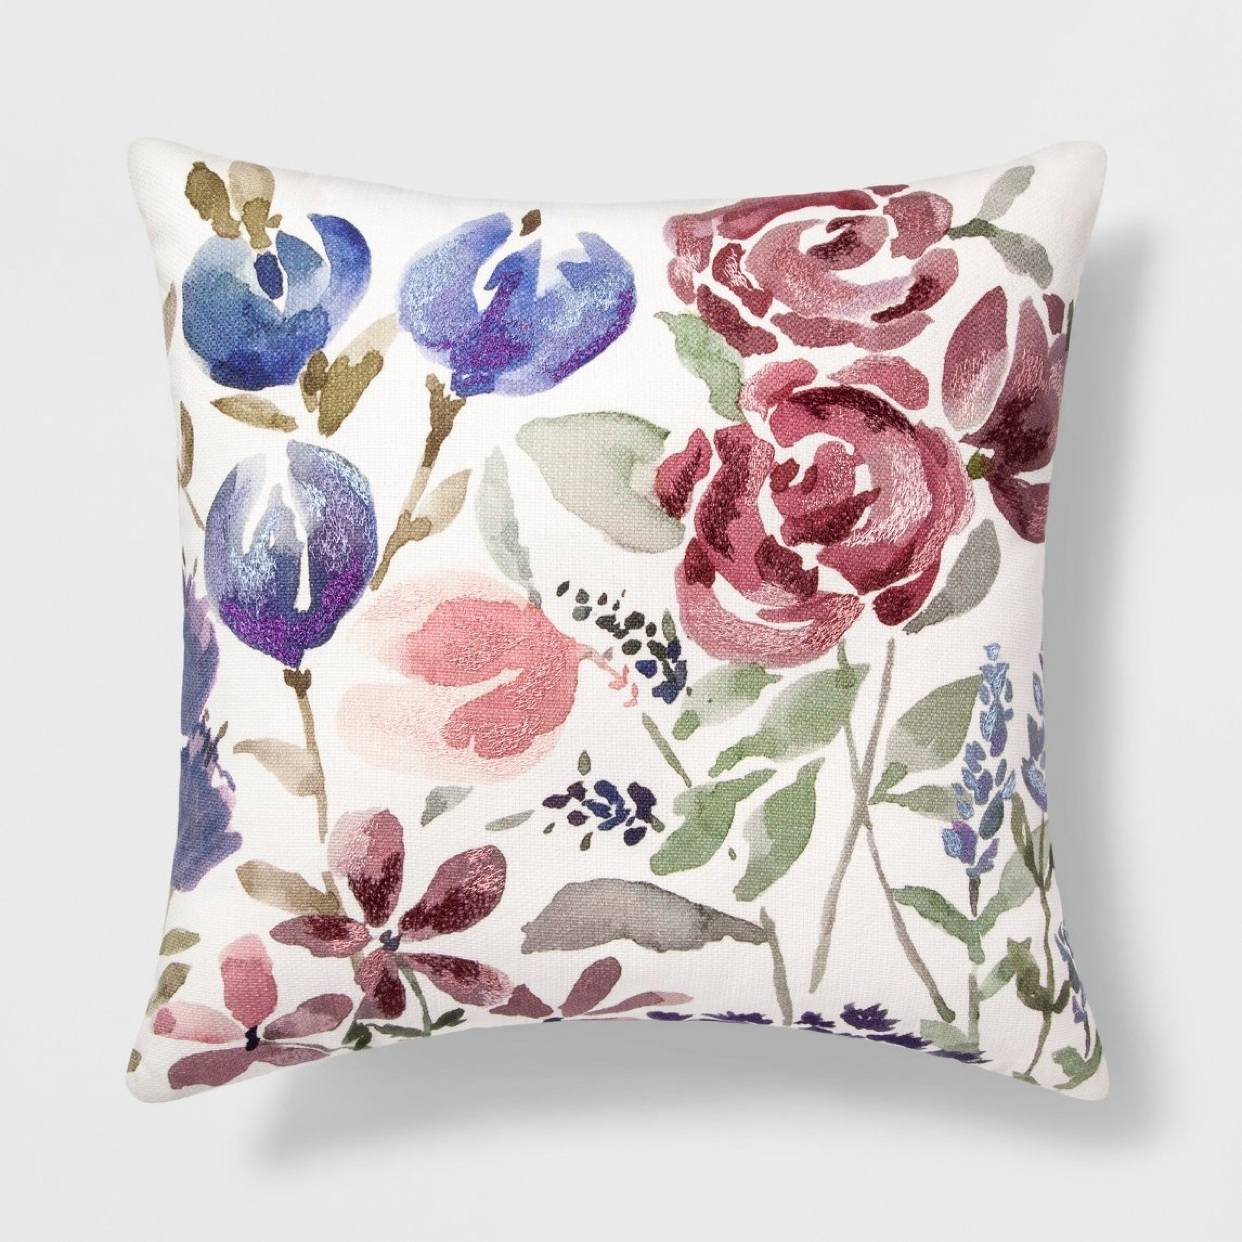 - I'll take 10 of these please! Totally swooning over this pillow! It's currently on our bed and oh so pretty. It's on sale right now too!Find it here.